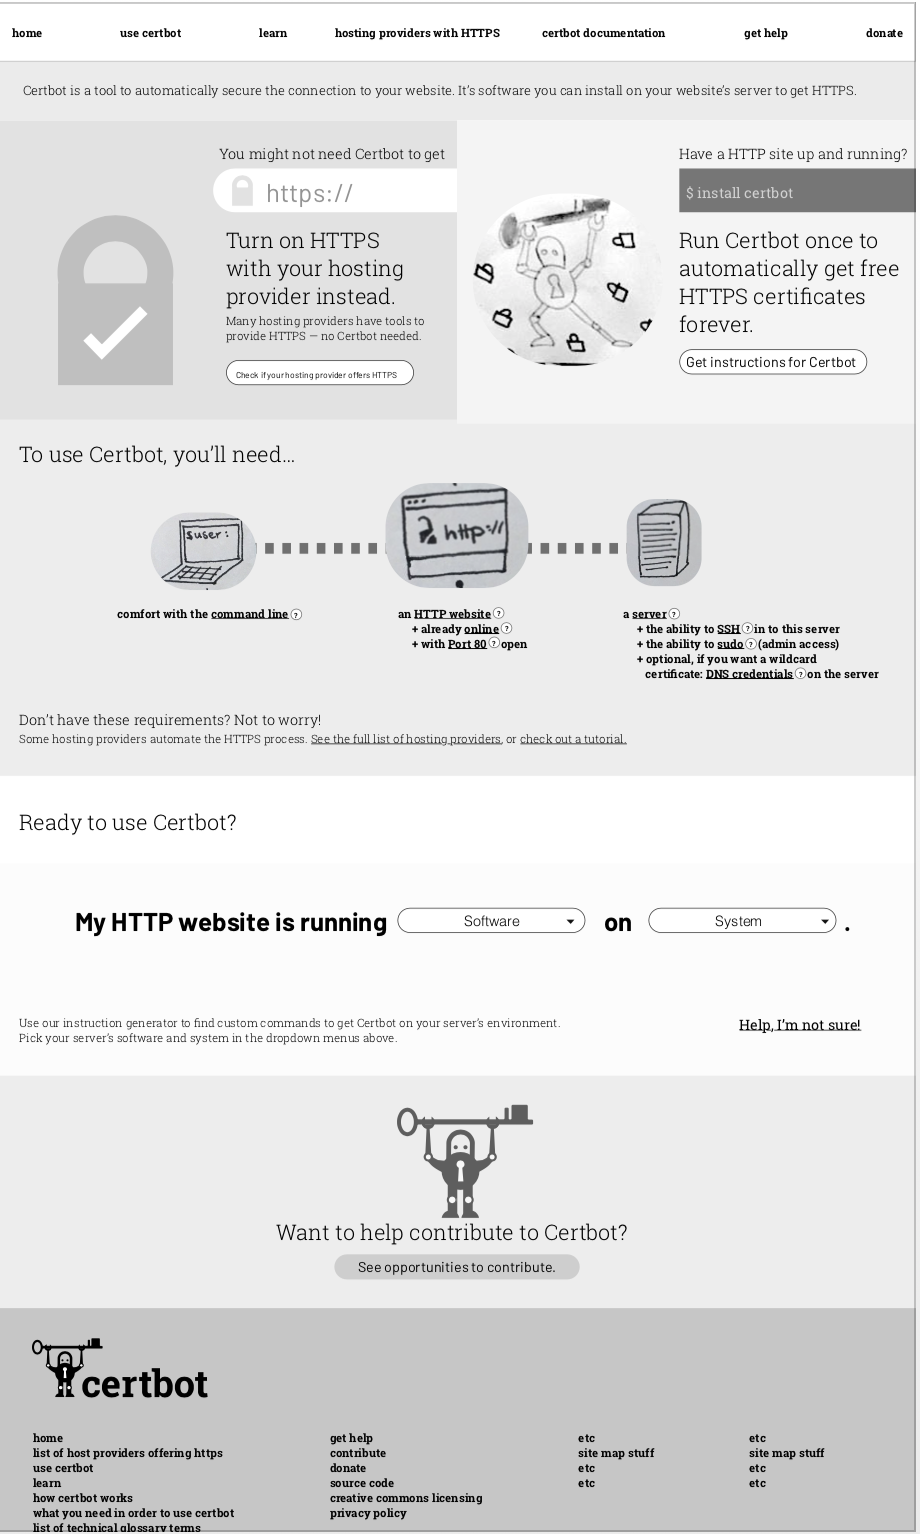 a grayscale mockup of the certbot website and rough illustrations.